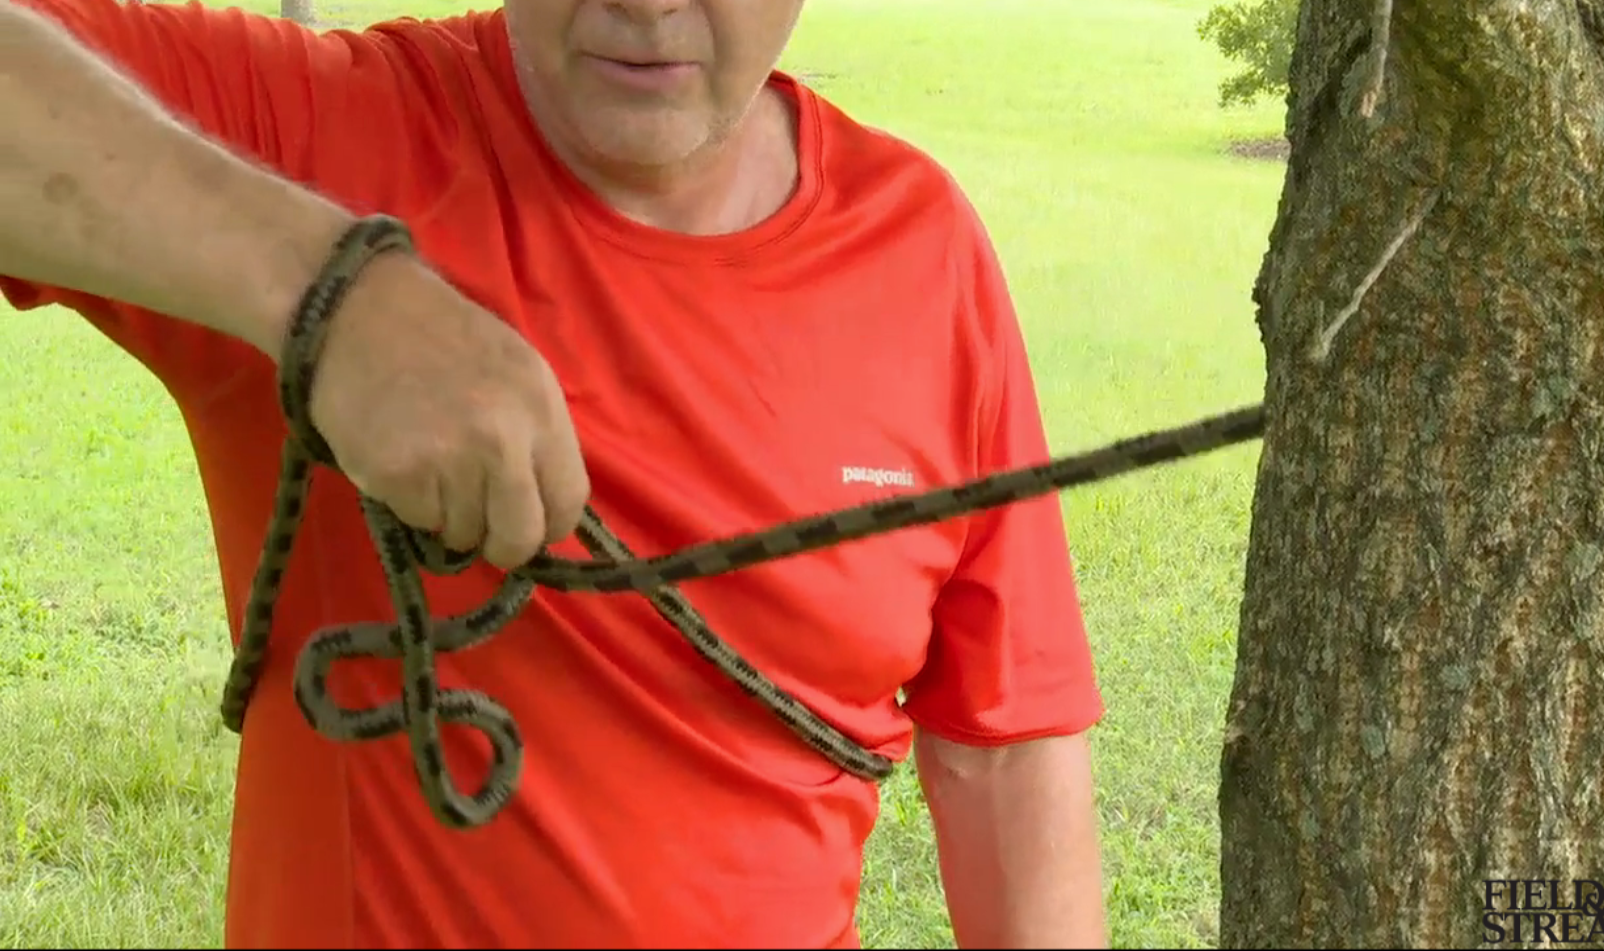 Video: How to Tie a Bowline with One Hand